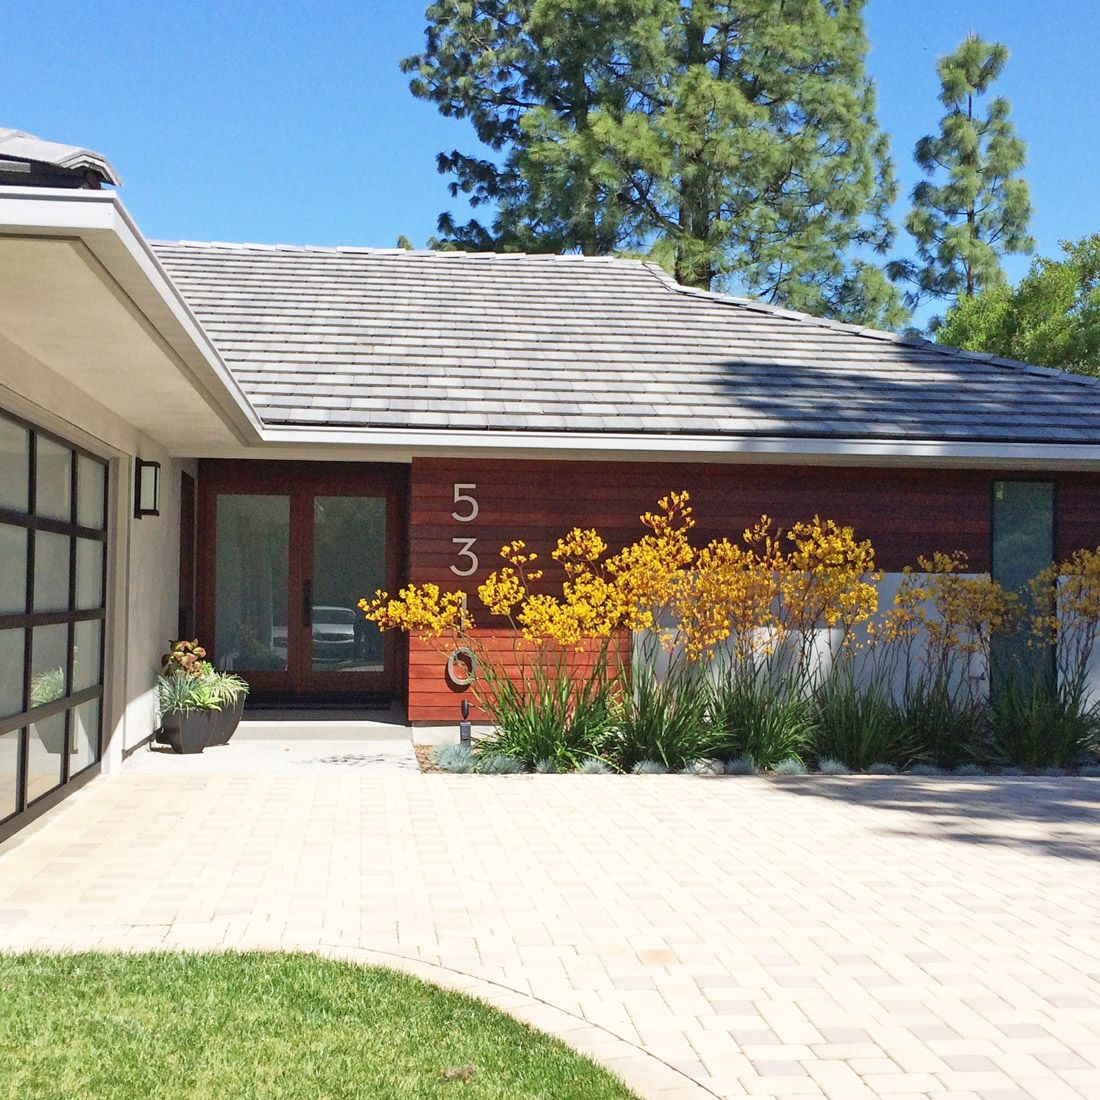 Stucco Exterior Ranch exterior remodel of ranch home with smooth grey stucco and ipe